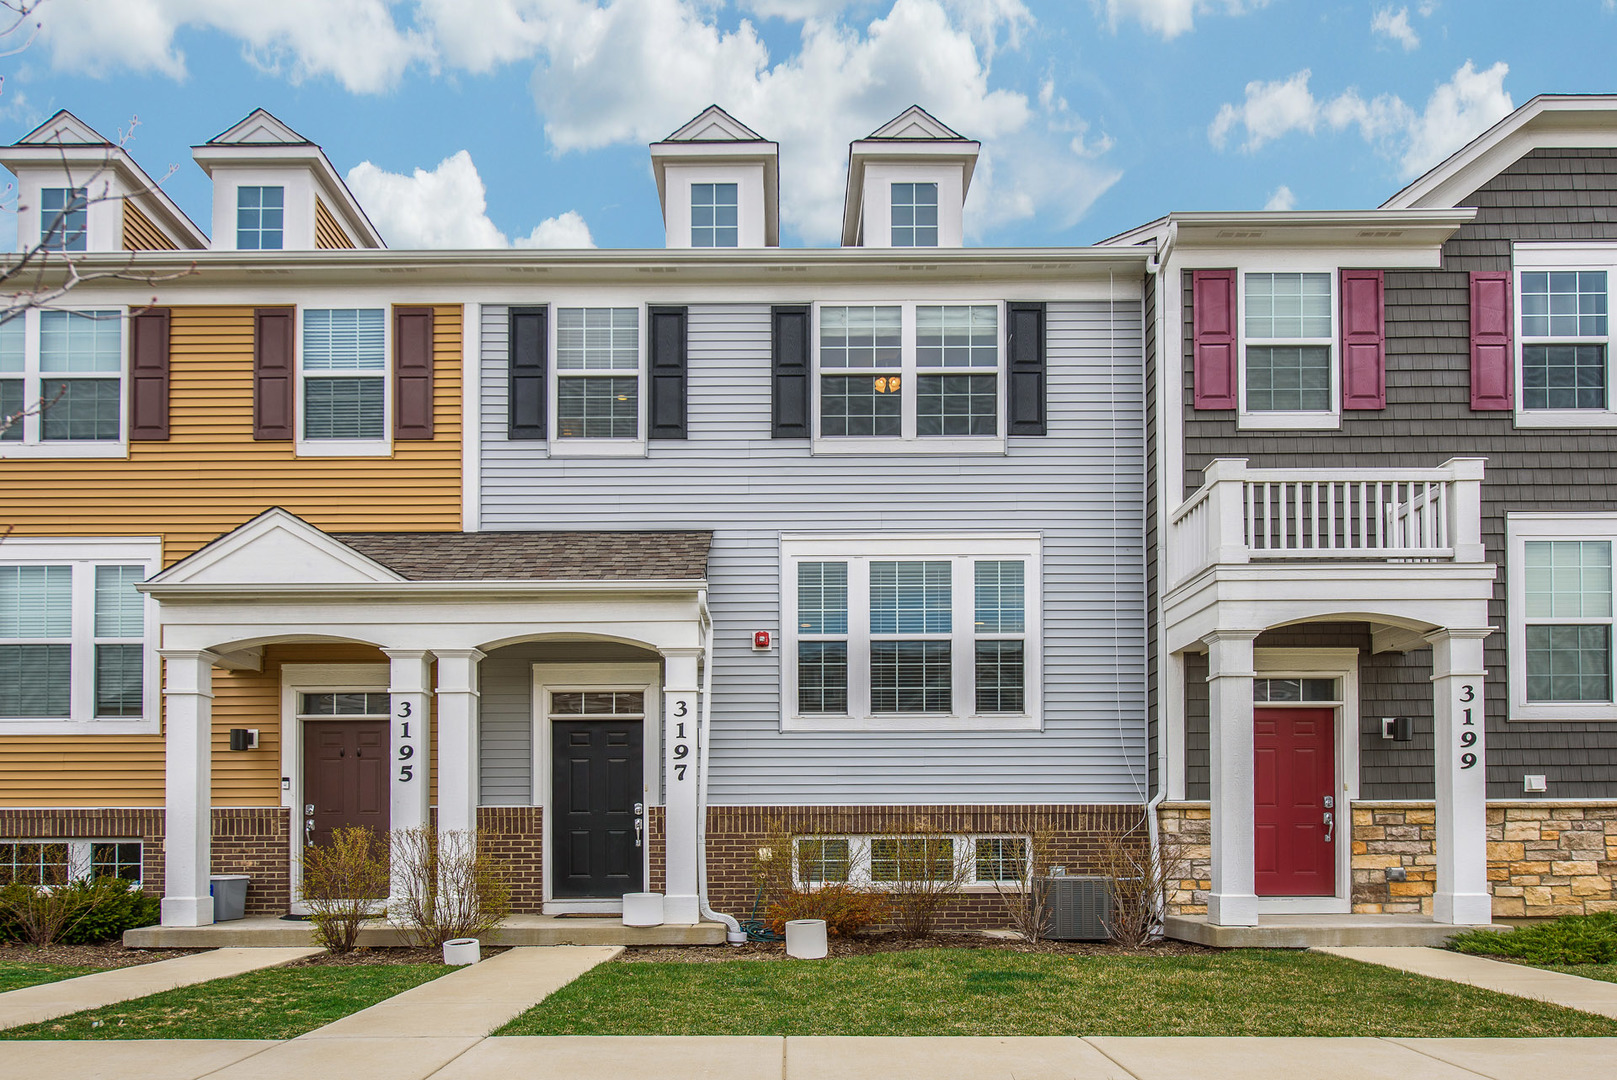 New Listings property for sale at 3197 CORAL Lane, Glenview Illinois 60026